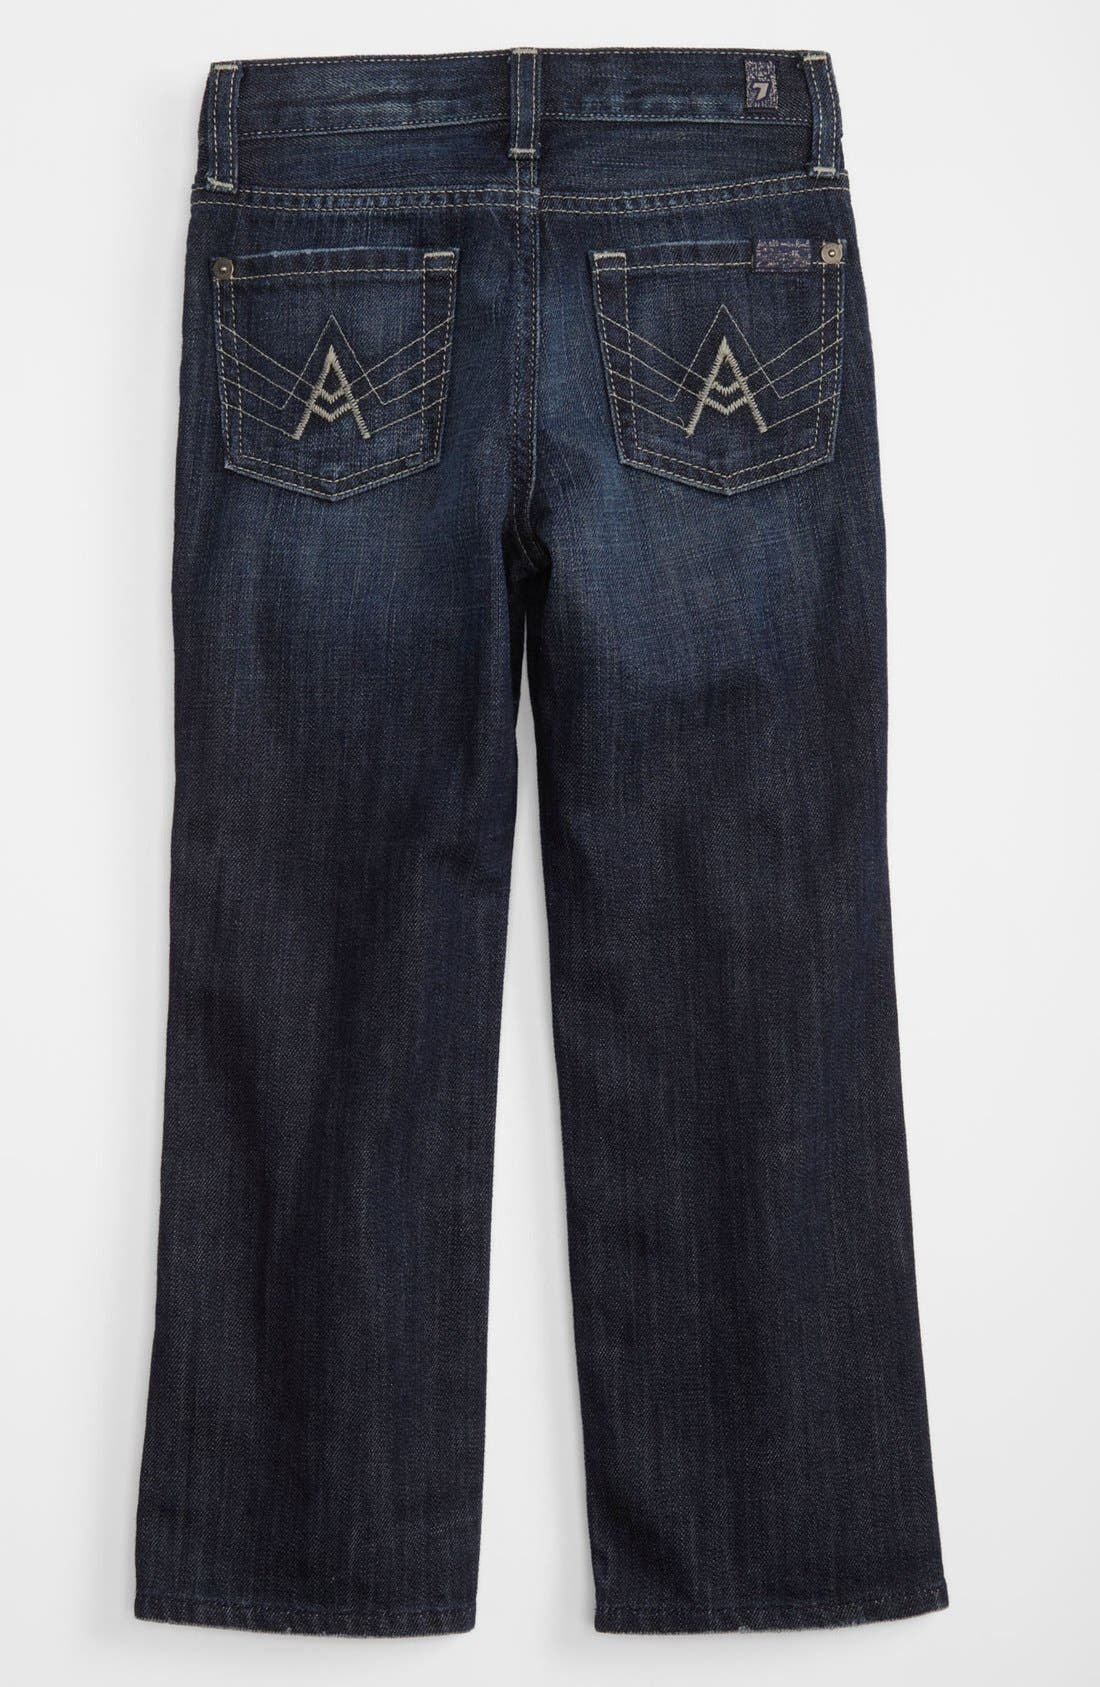 Alternate Image 1 Selected - 7 For All Mankind® 'Standard' Straight Leg Jeans (Little Boys & Big Boys) (Online Only)